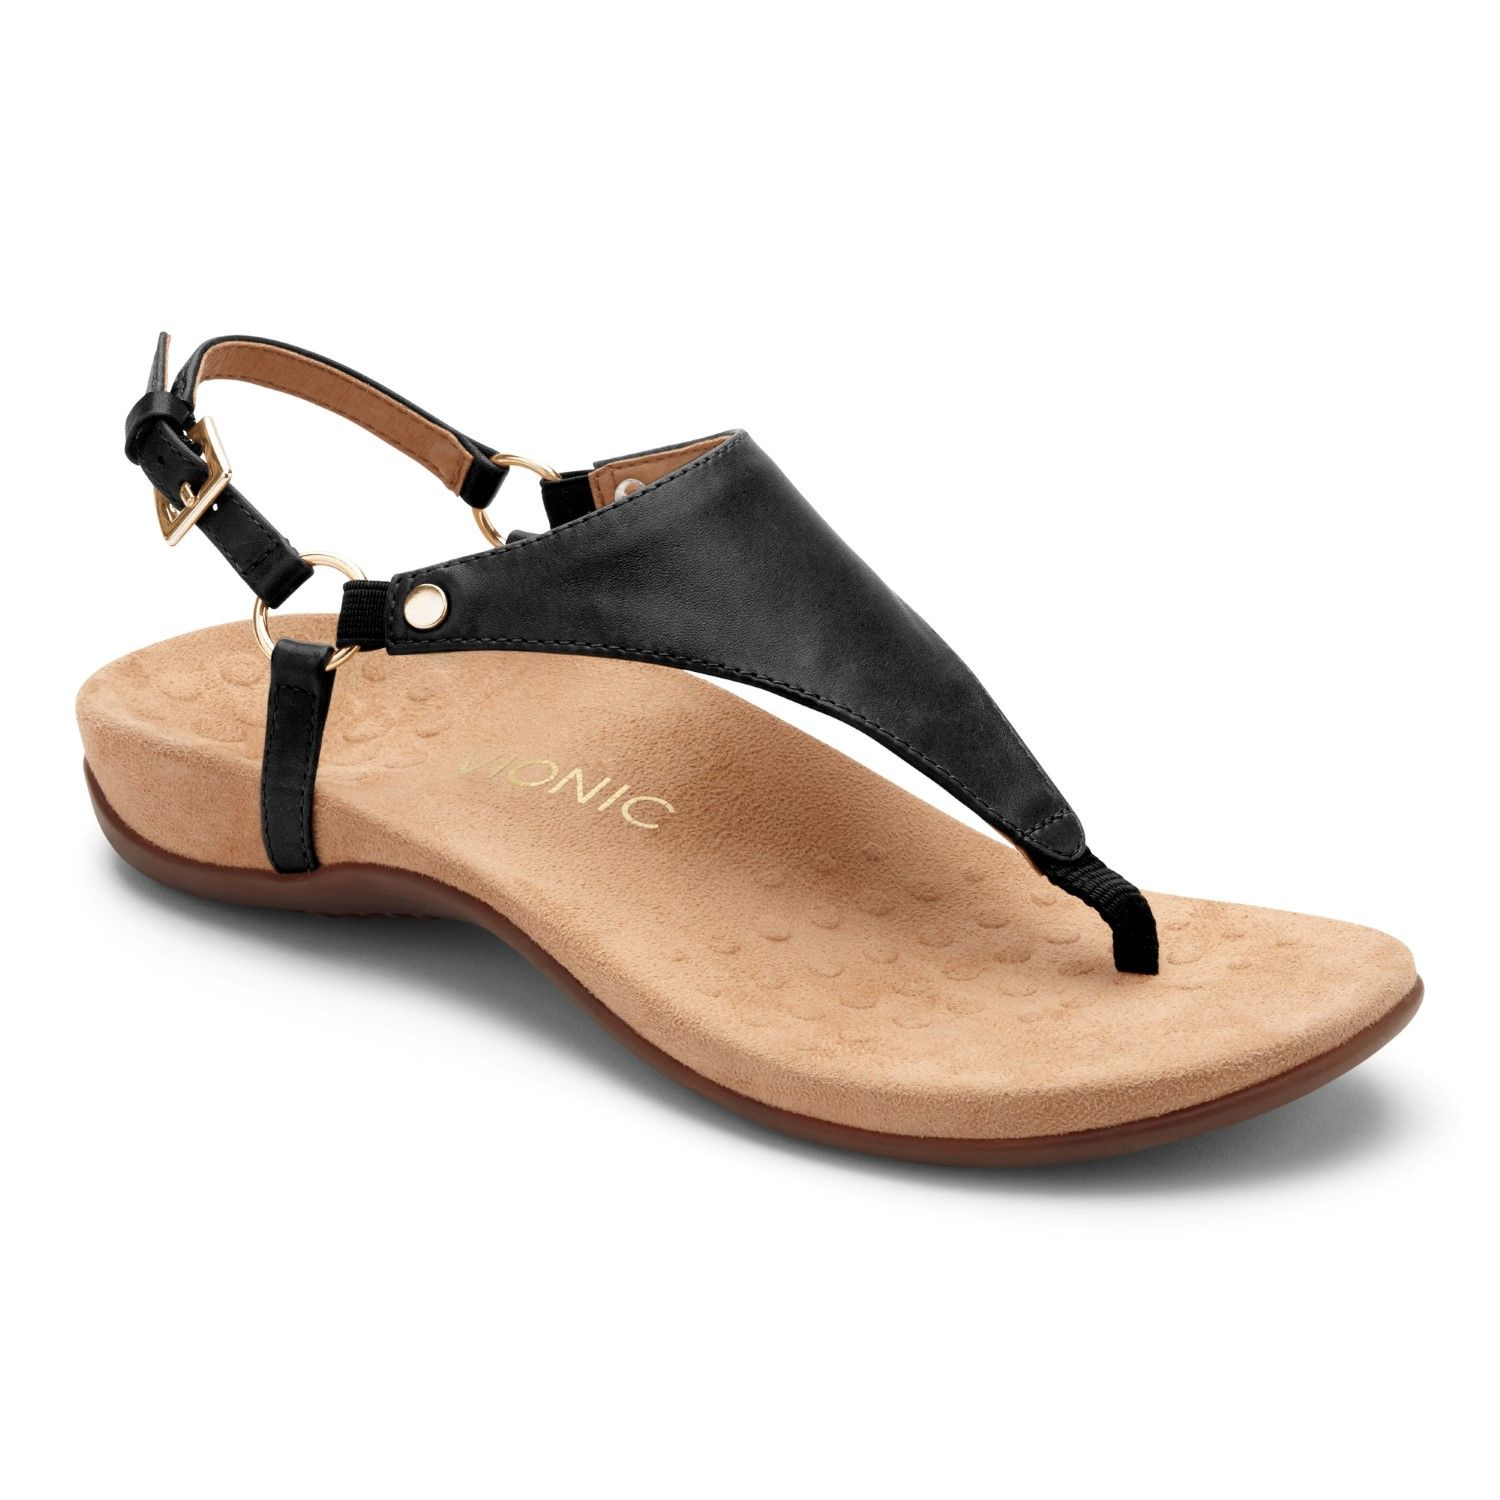 b02fa397f Vionic Rest Kirra - Women's Supportive Sandals Black - 5 Medium in ...